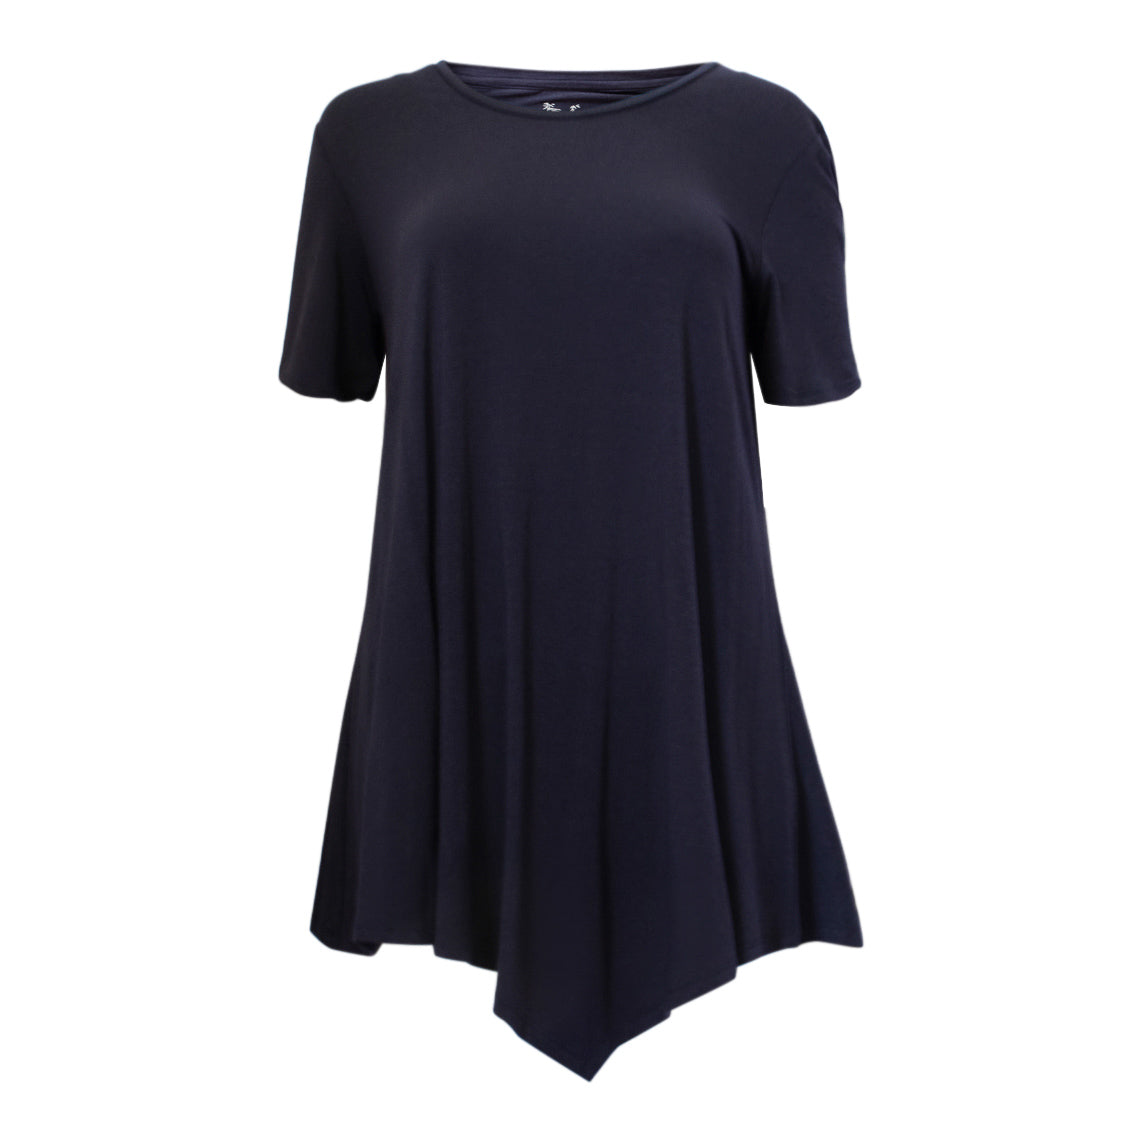 Bamboo swing tee - navy blue-Bamboo tee-Oz About Oz